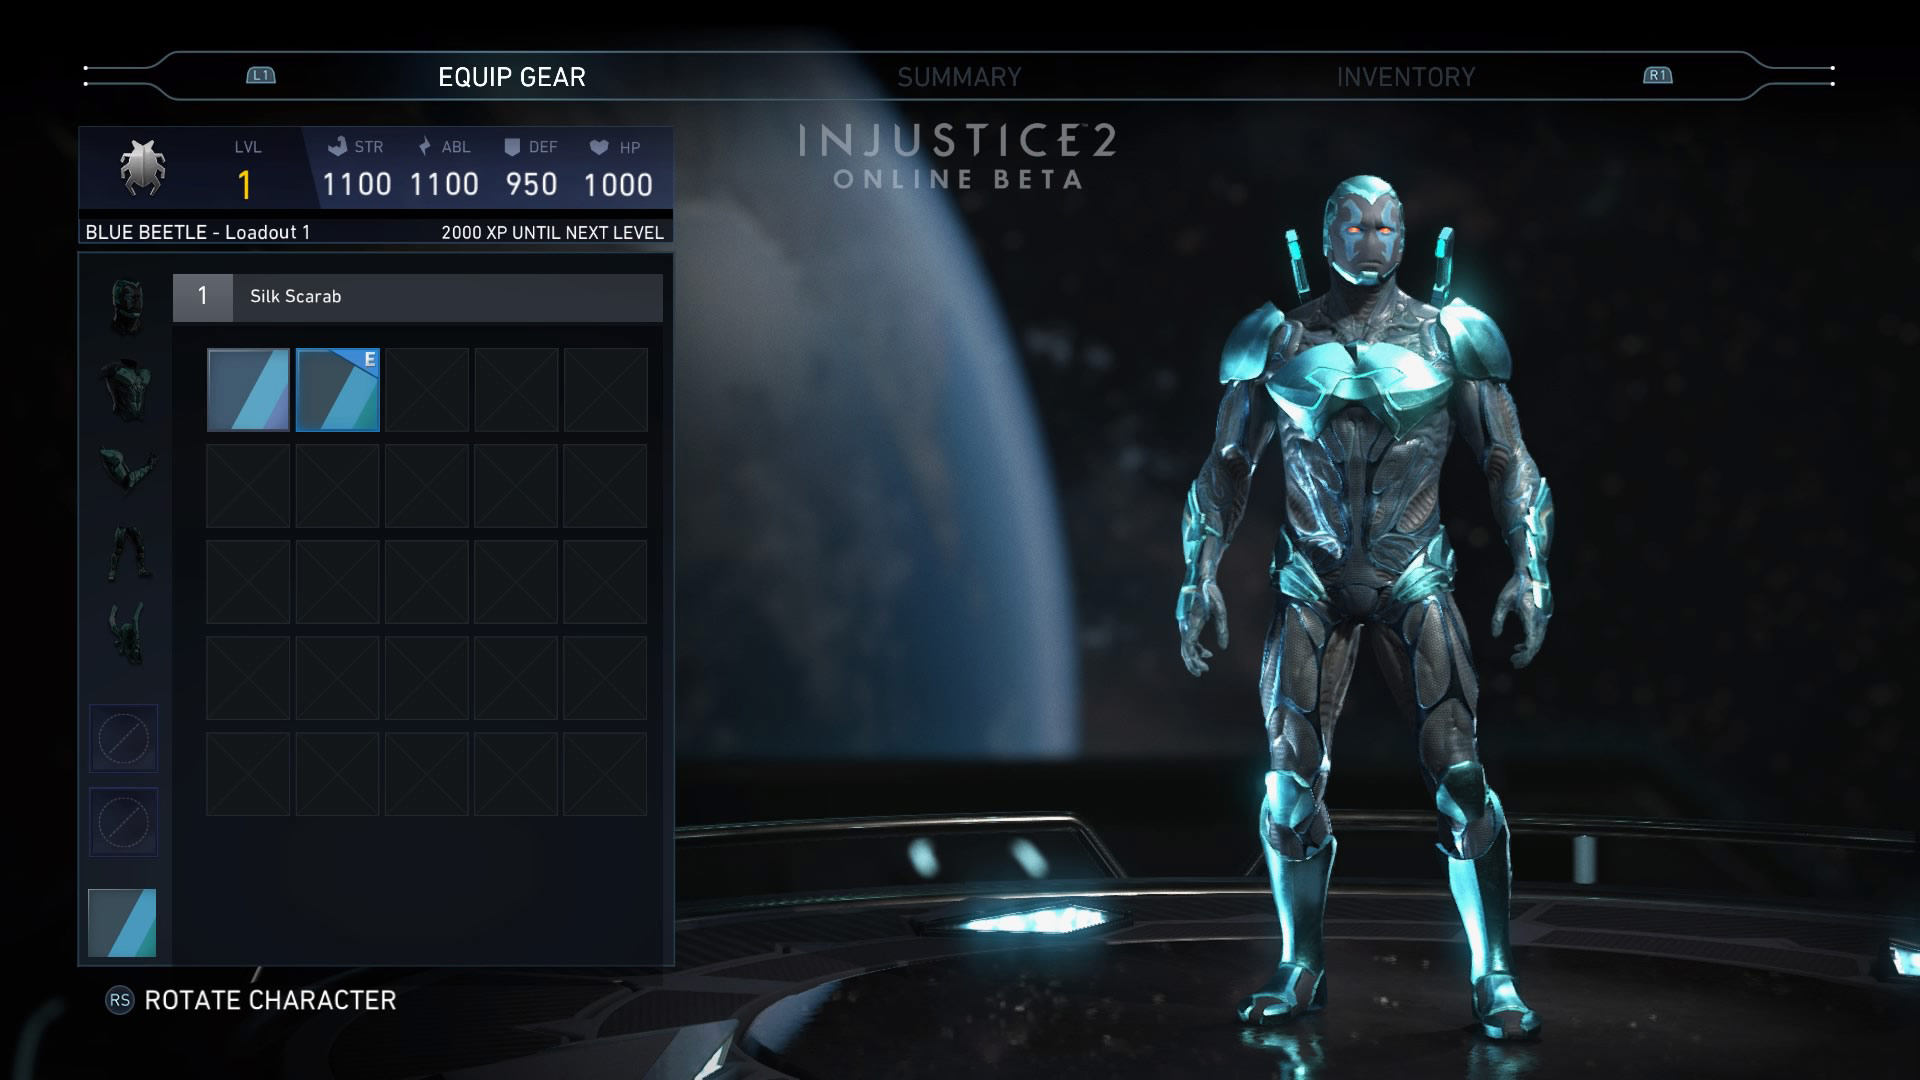 Blue Beetle in the Injustice 2 beta 1 out of 6 image gallery